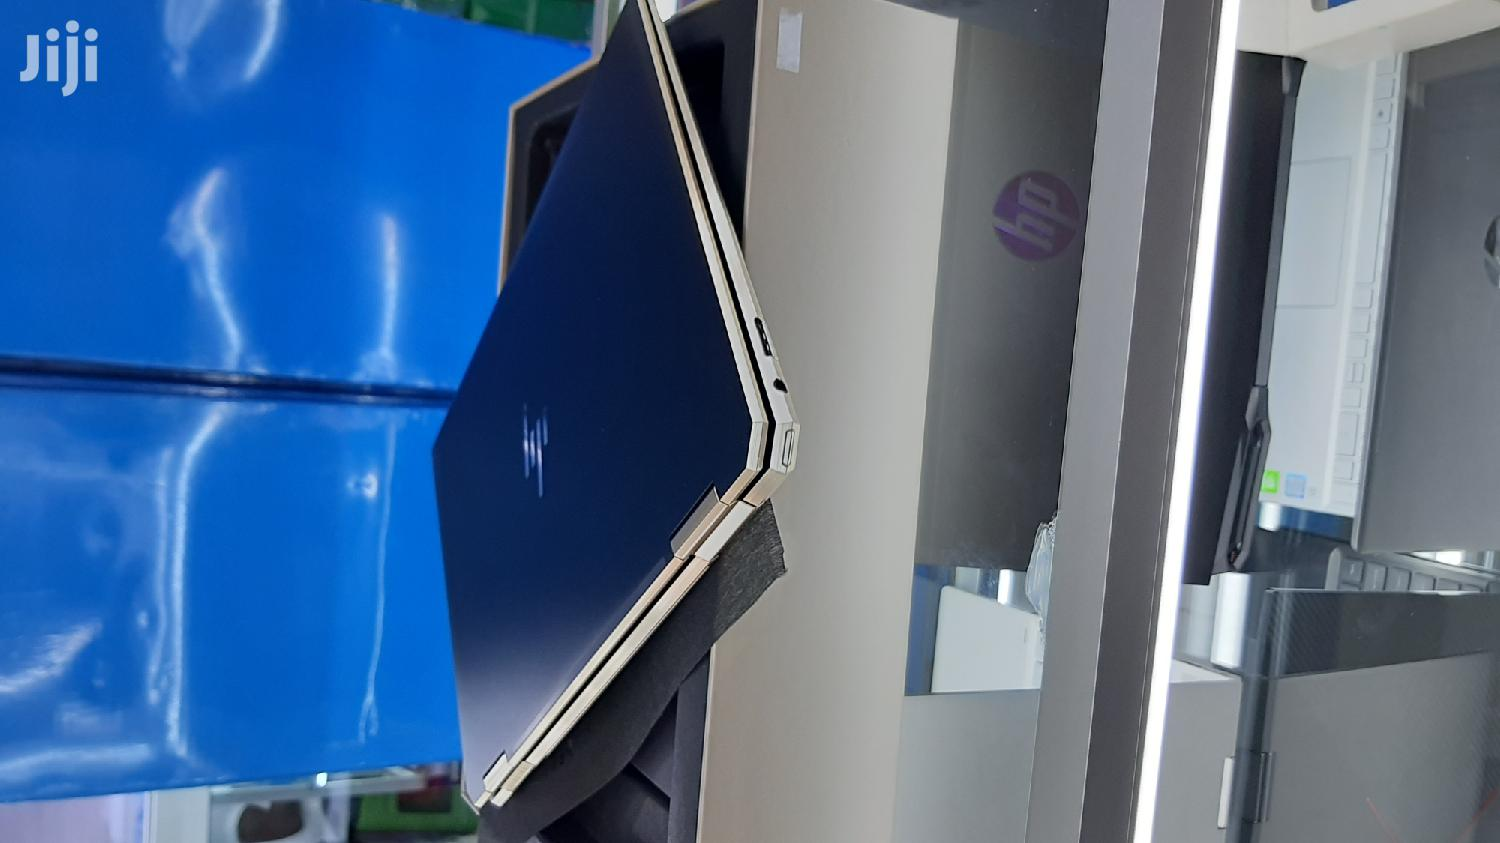 New Laptop HP Spectre X360 13 16GB Intel Core I7 SSD 512GB   Laptops & Computers for sale in Nairobi Central, Nairobi, Kenya